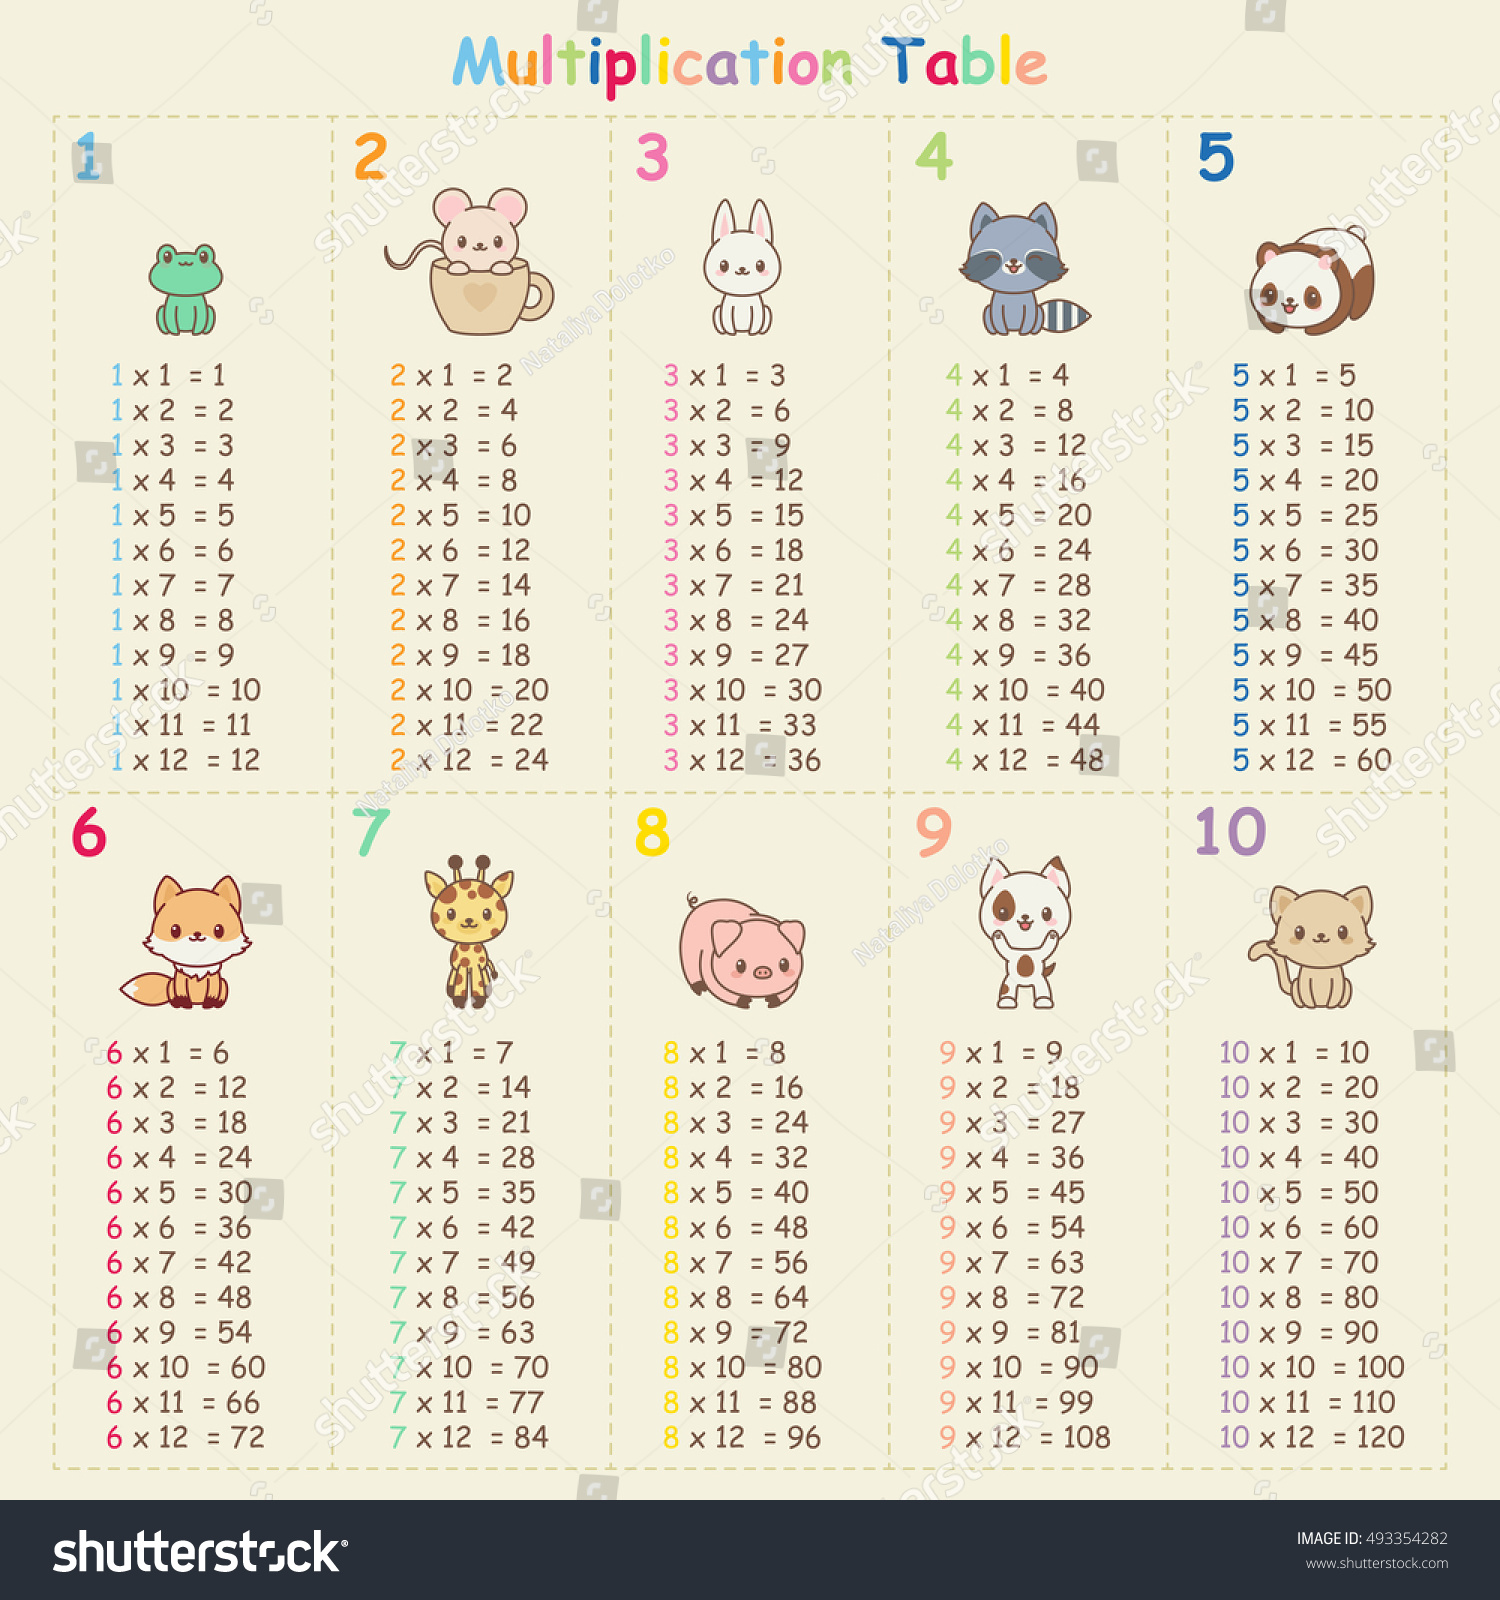 Multiplication Table Cute Kawaii Animals Educational Stock Vector